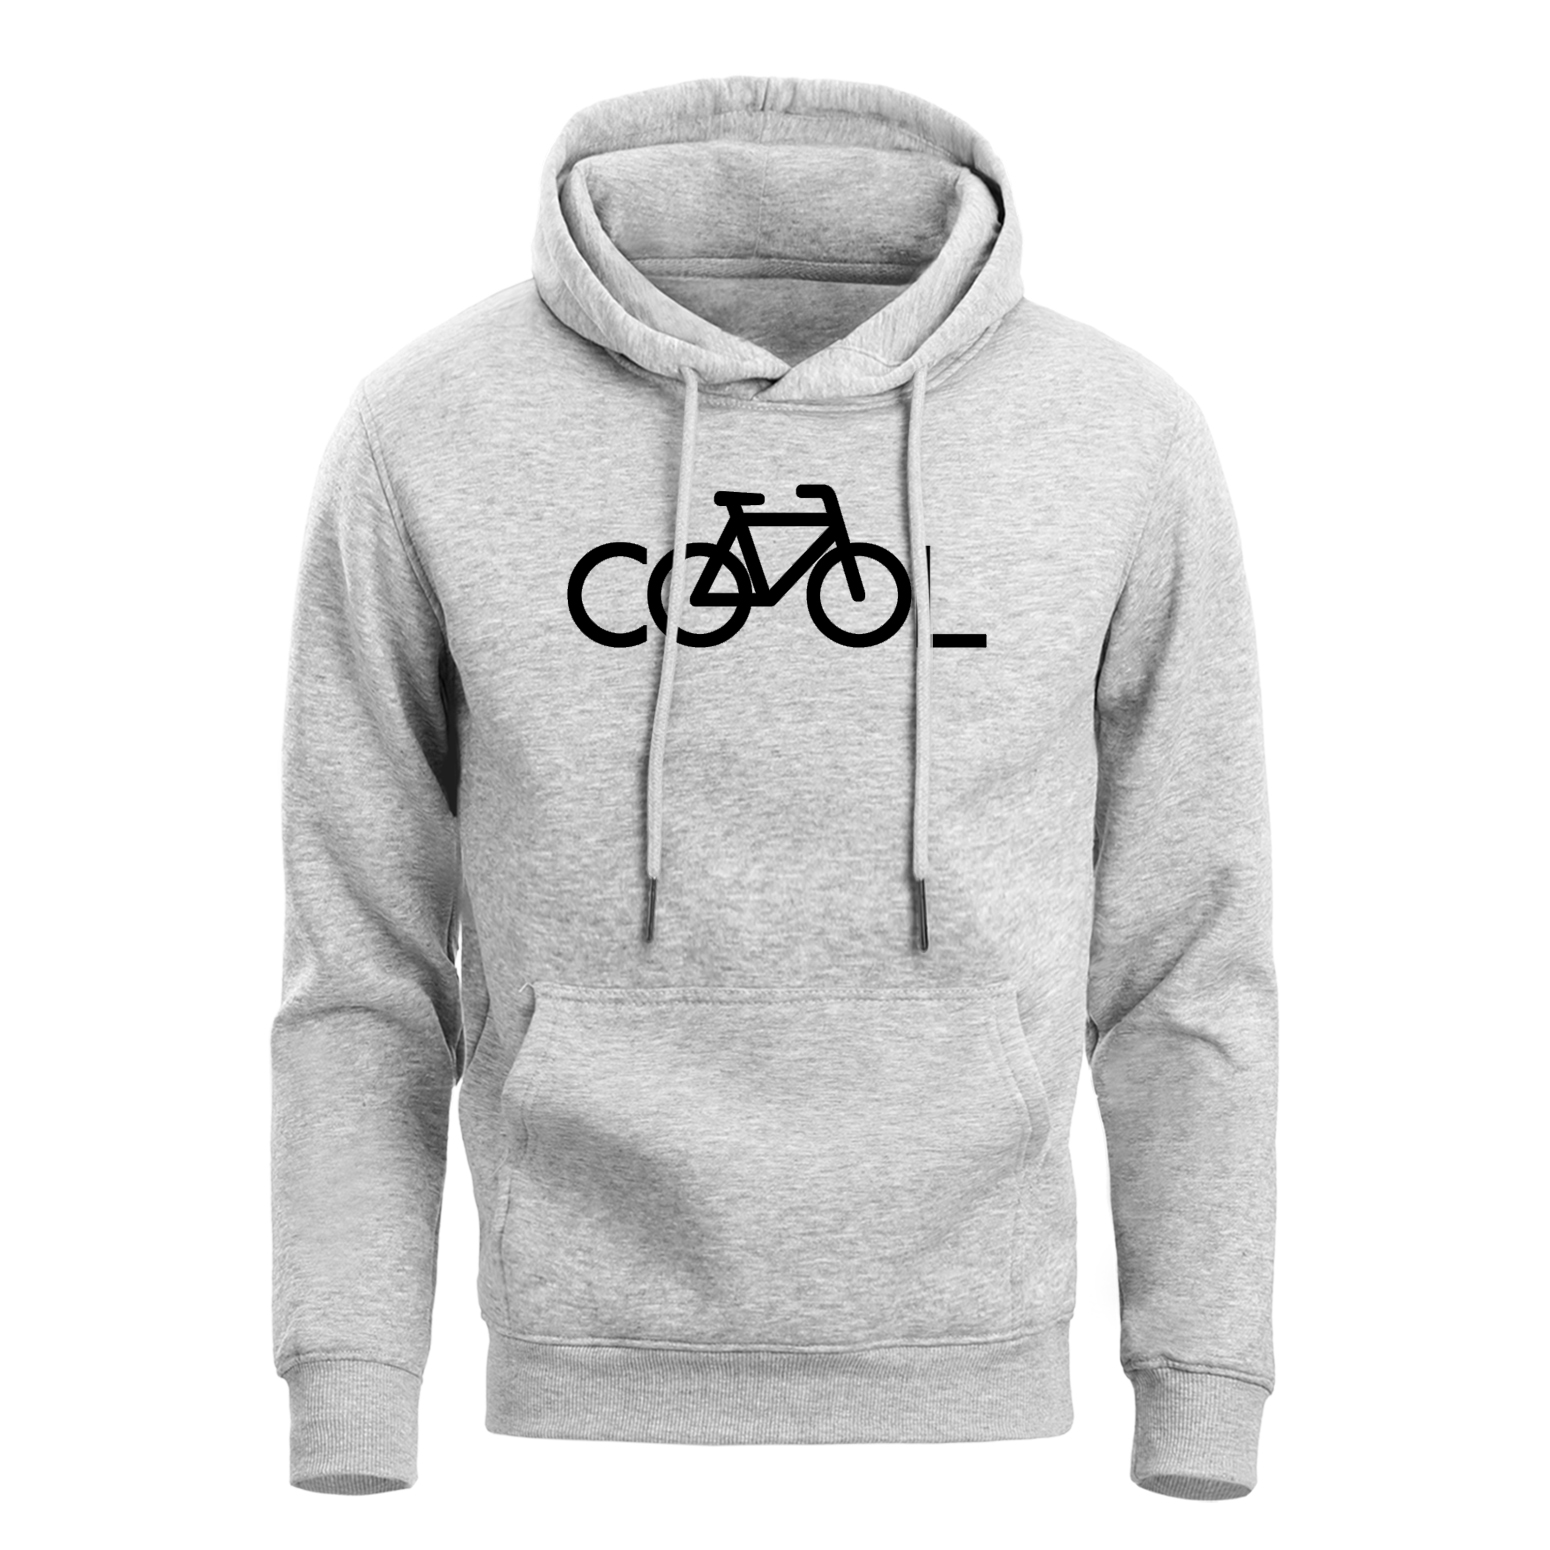 Bike Cool Funny Outdoor Cycling Hoodie Sweatshirt Men Casual 2019 Novelty Winter Warm Fleece Outwear Hoddies Male Pollovers